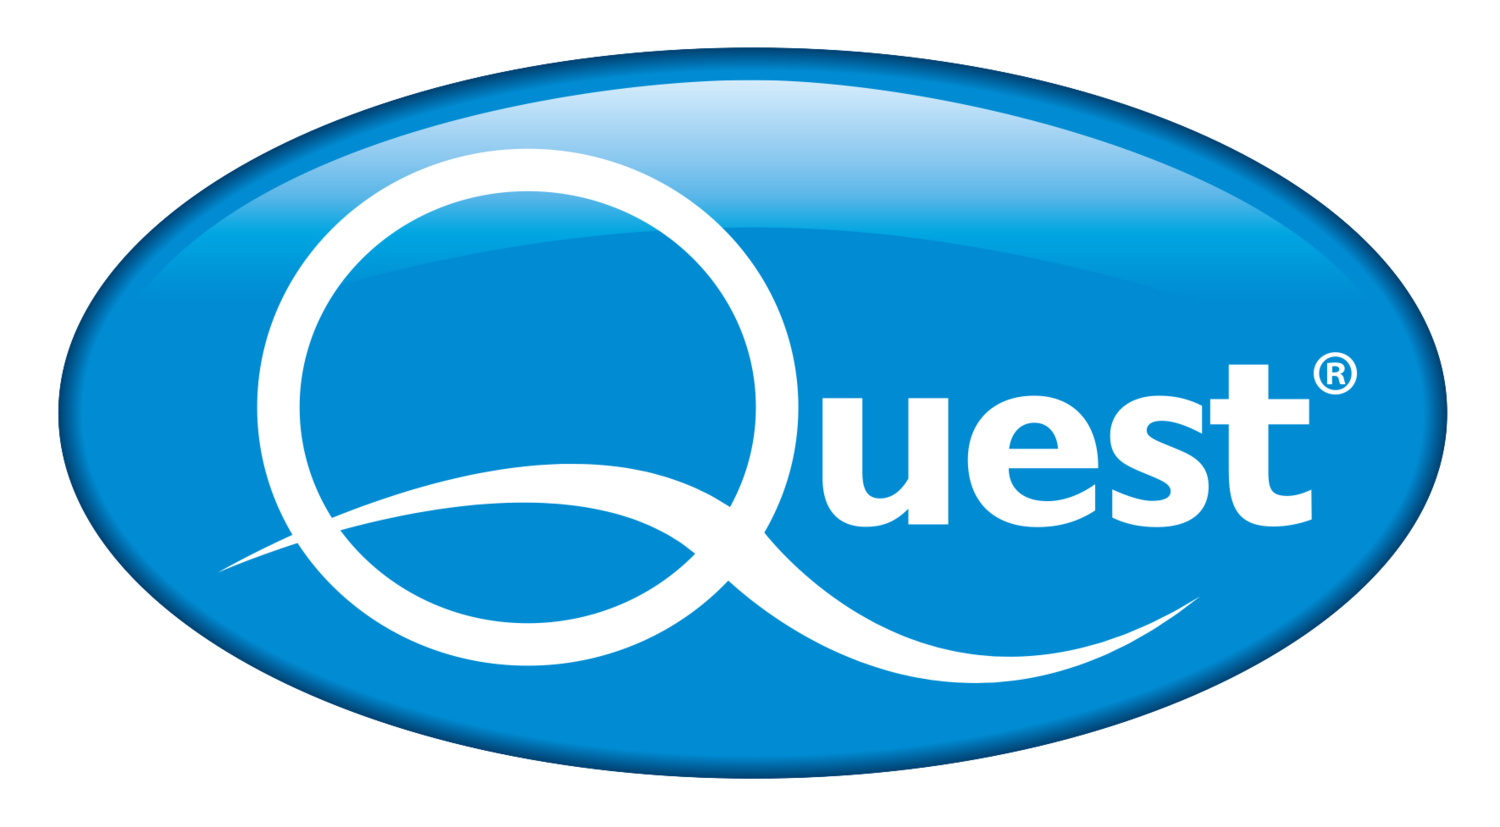 Quest Home